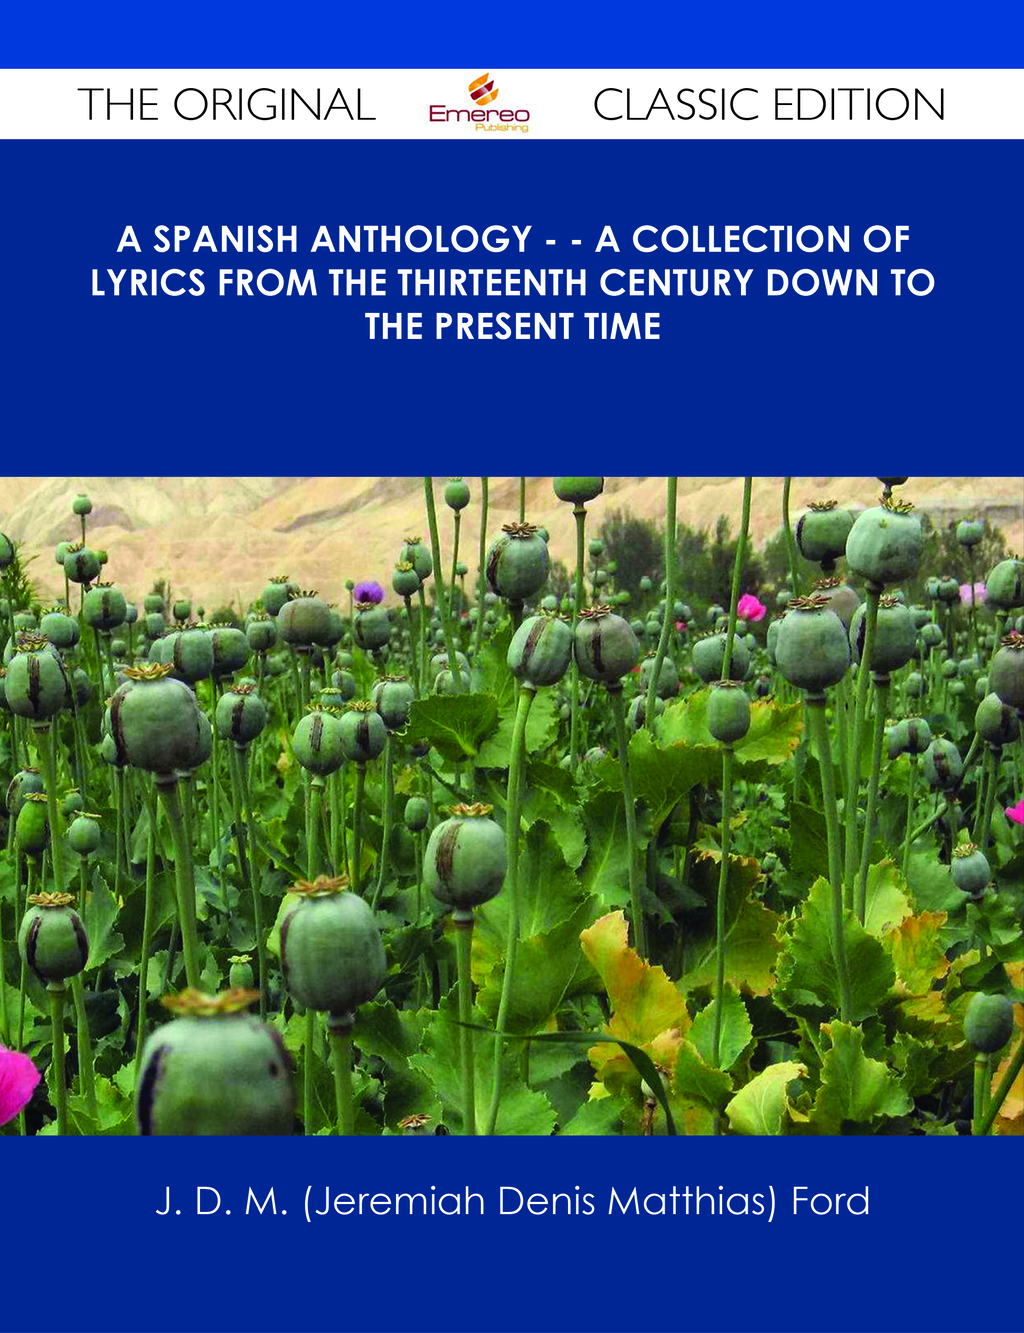 A Spanish Anthology - - A Collection of Lyrics from the Thirteenth Century Down to the Present Time - The Original Classic Edition